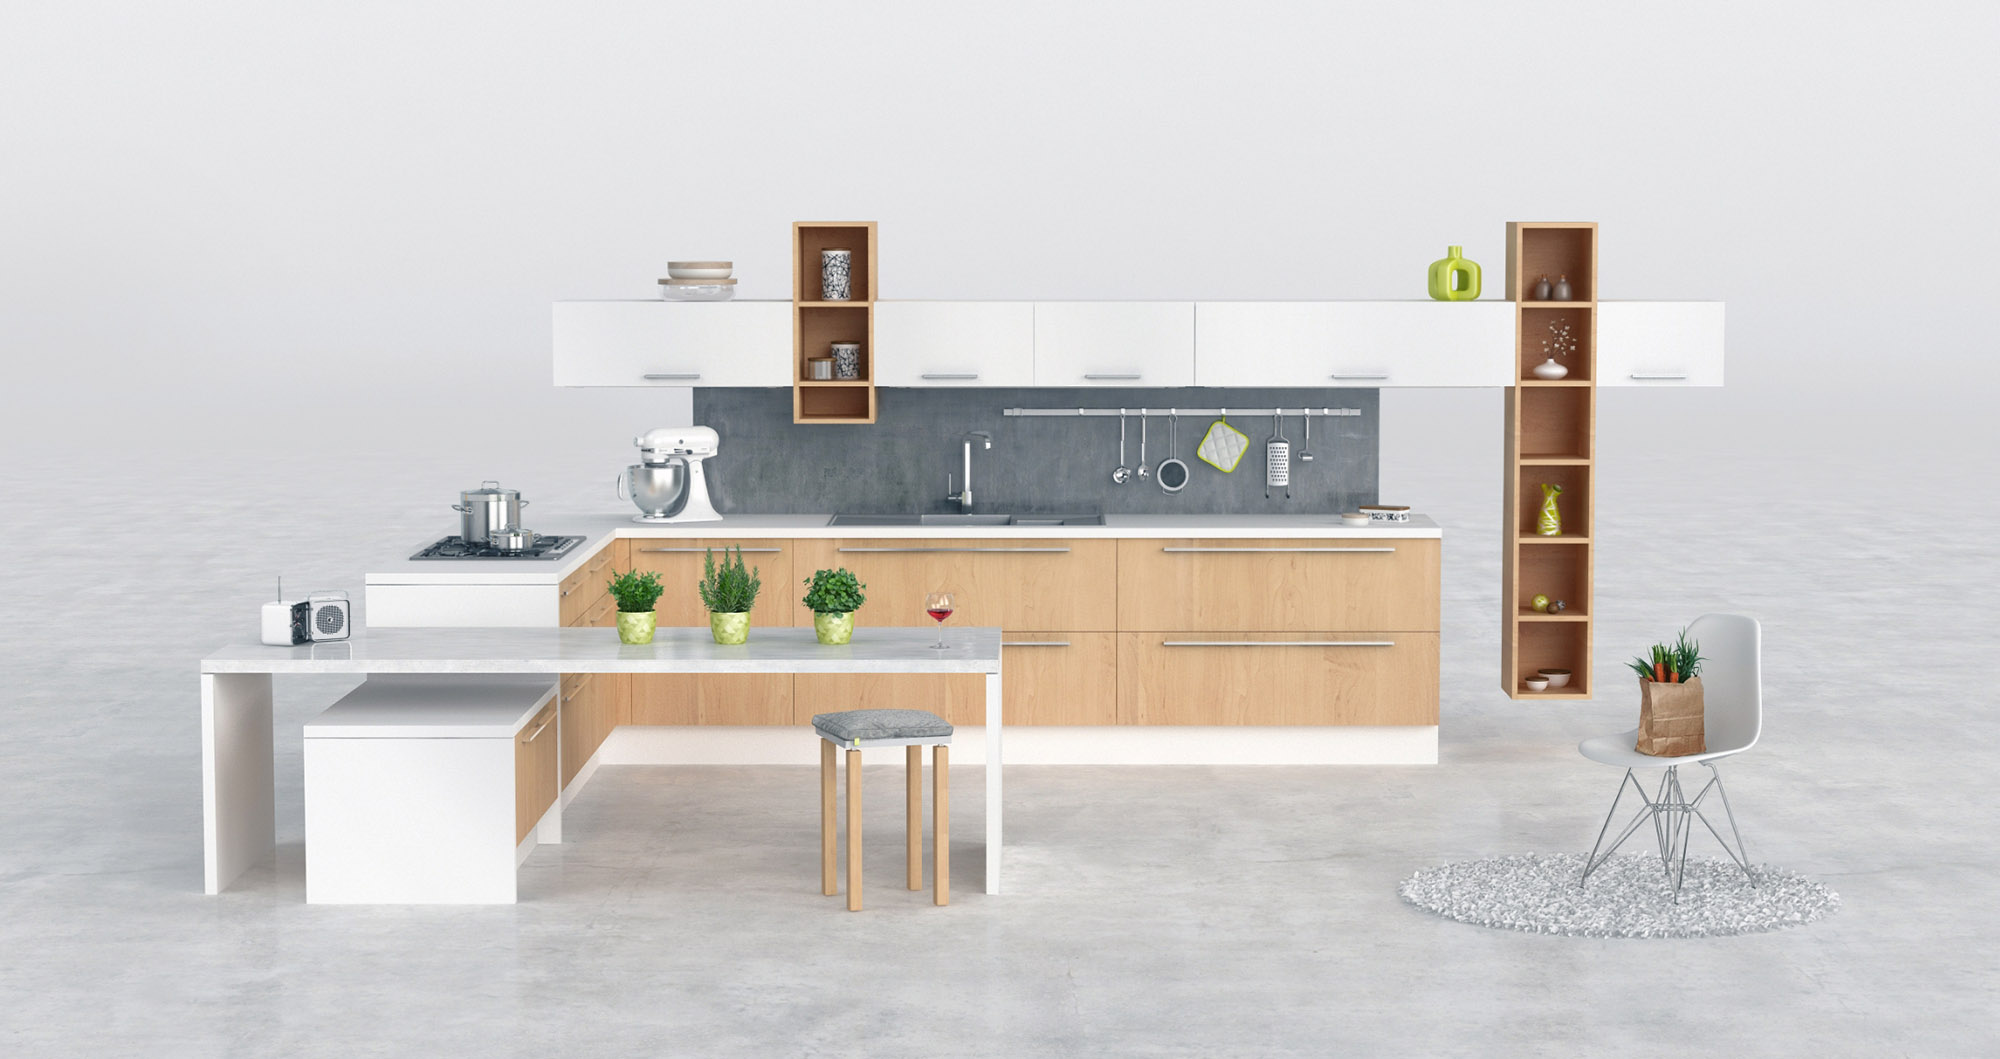 MK_3DIllustration_KitchenVisualization